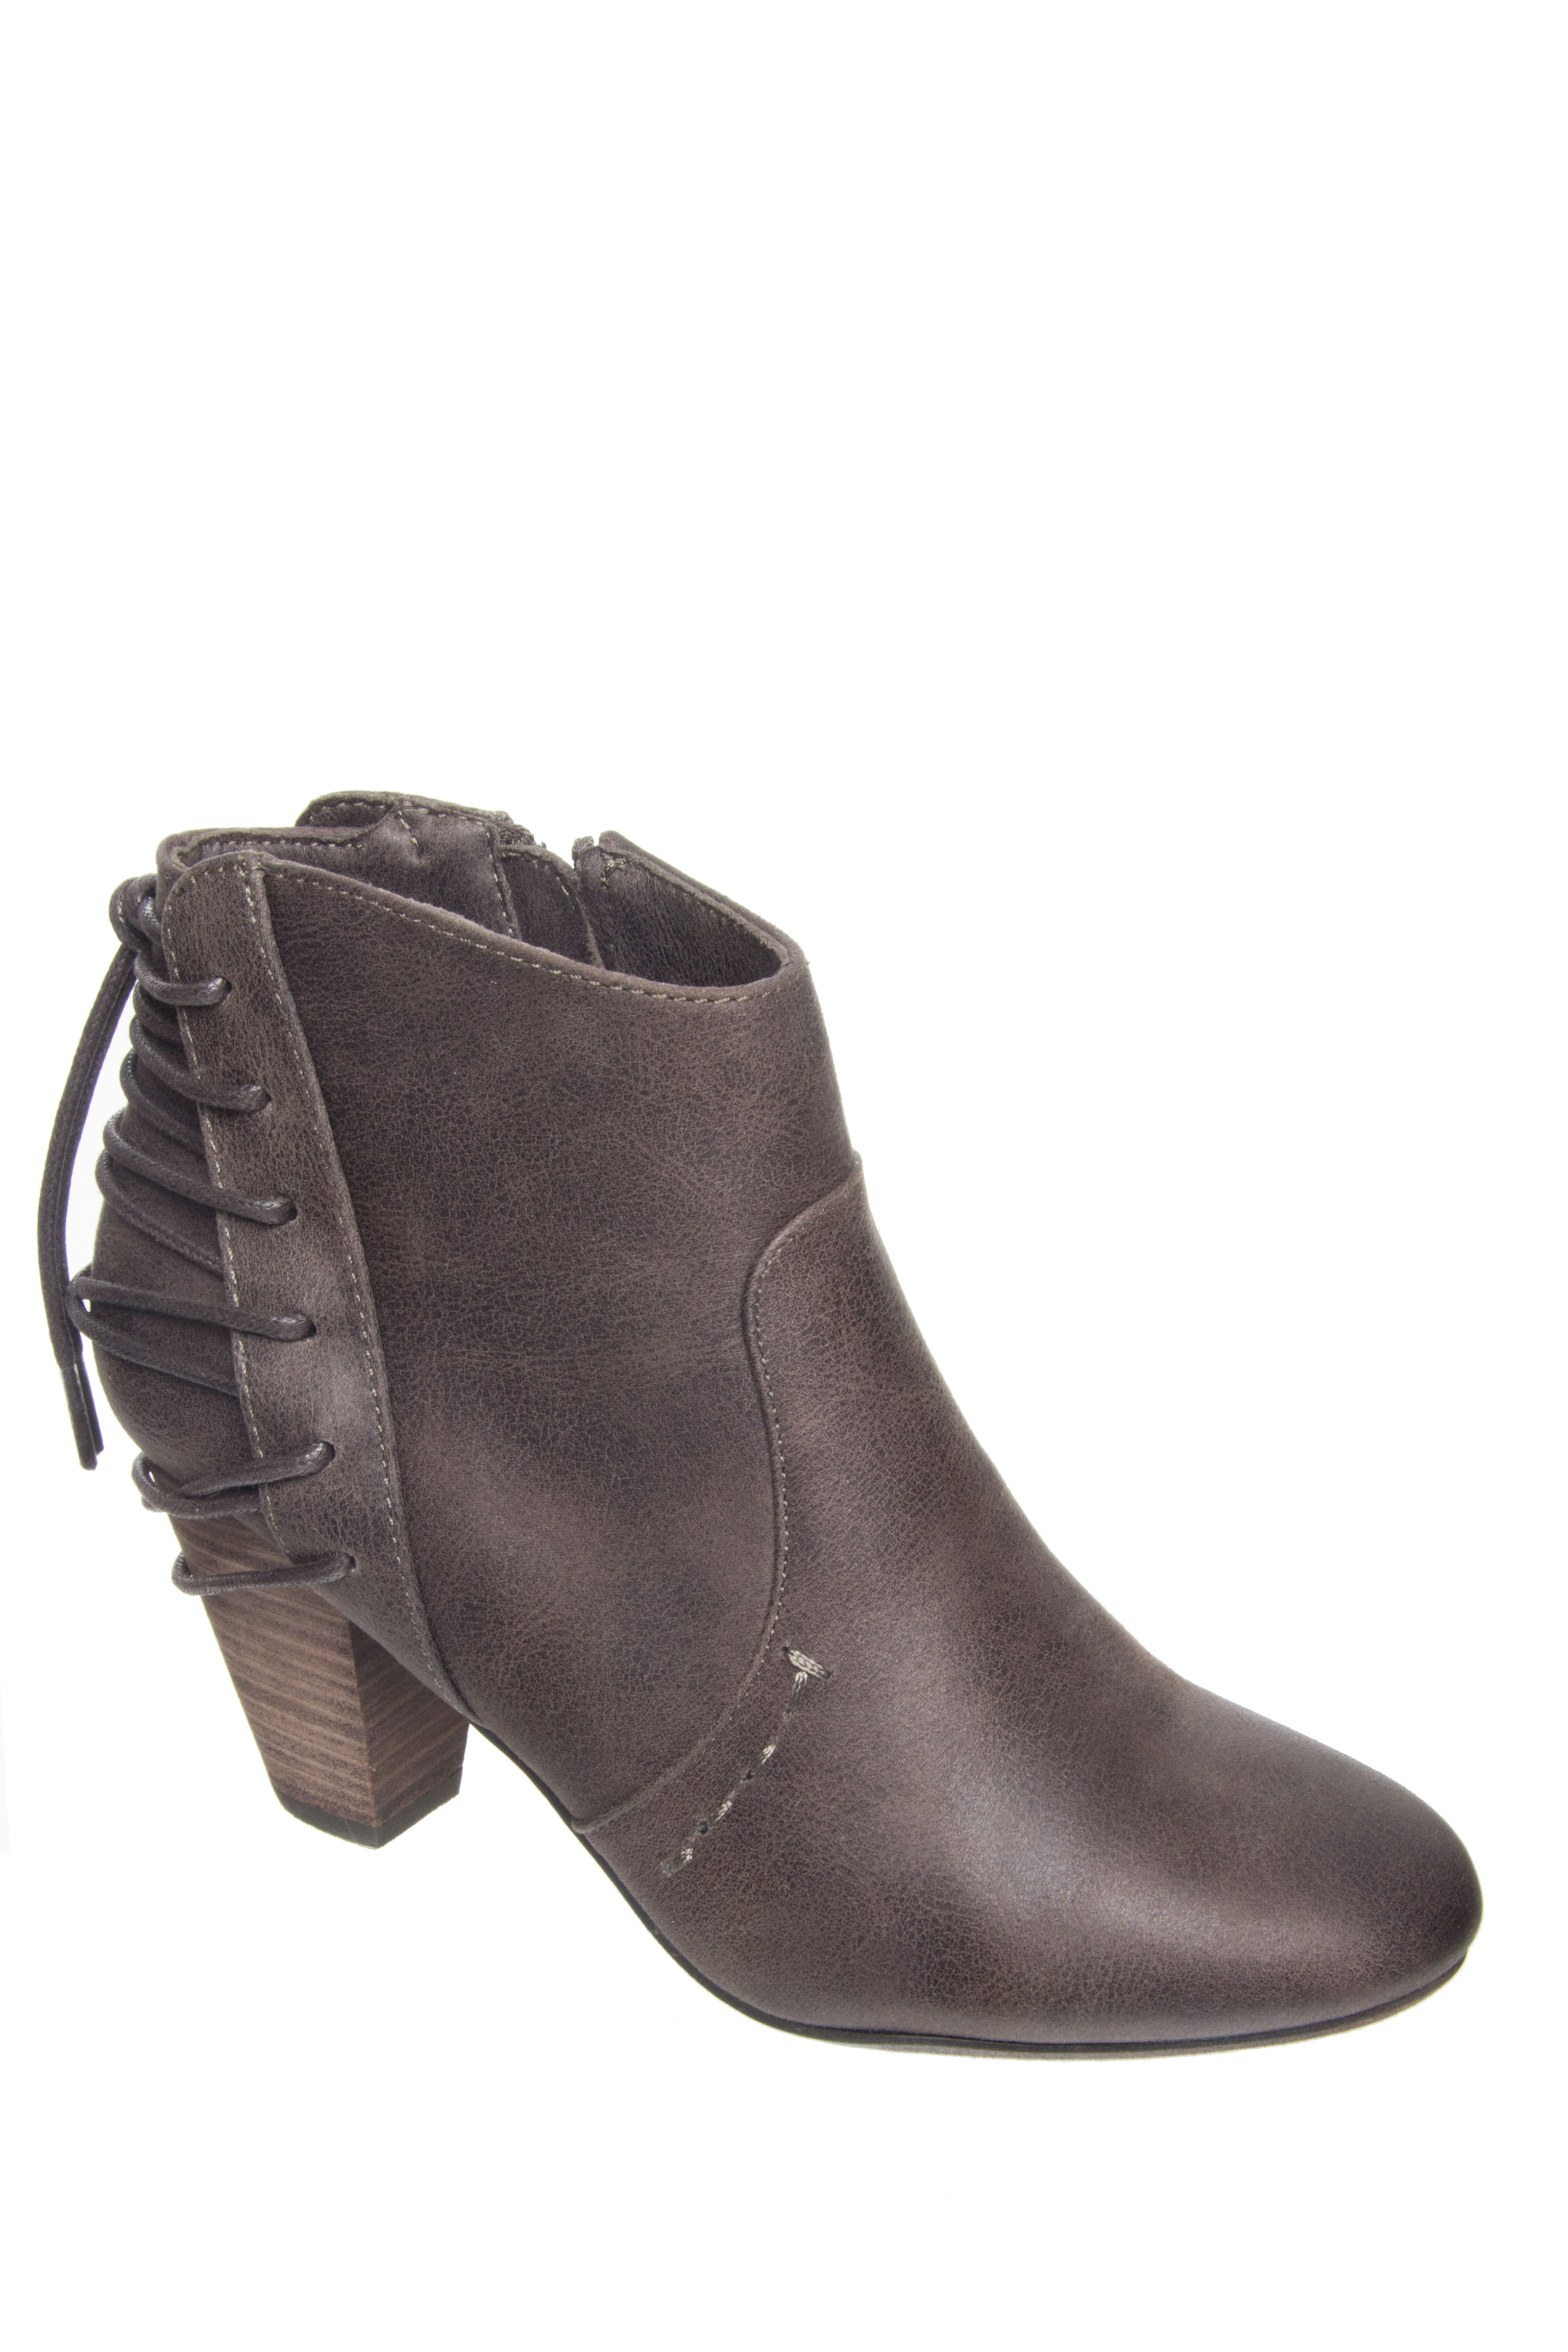 Report Milla Back Lace Booties - Brown